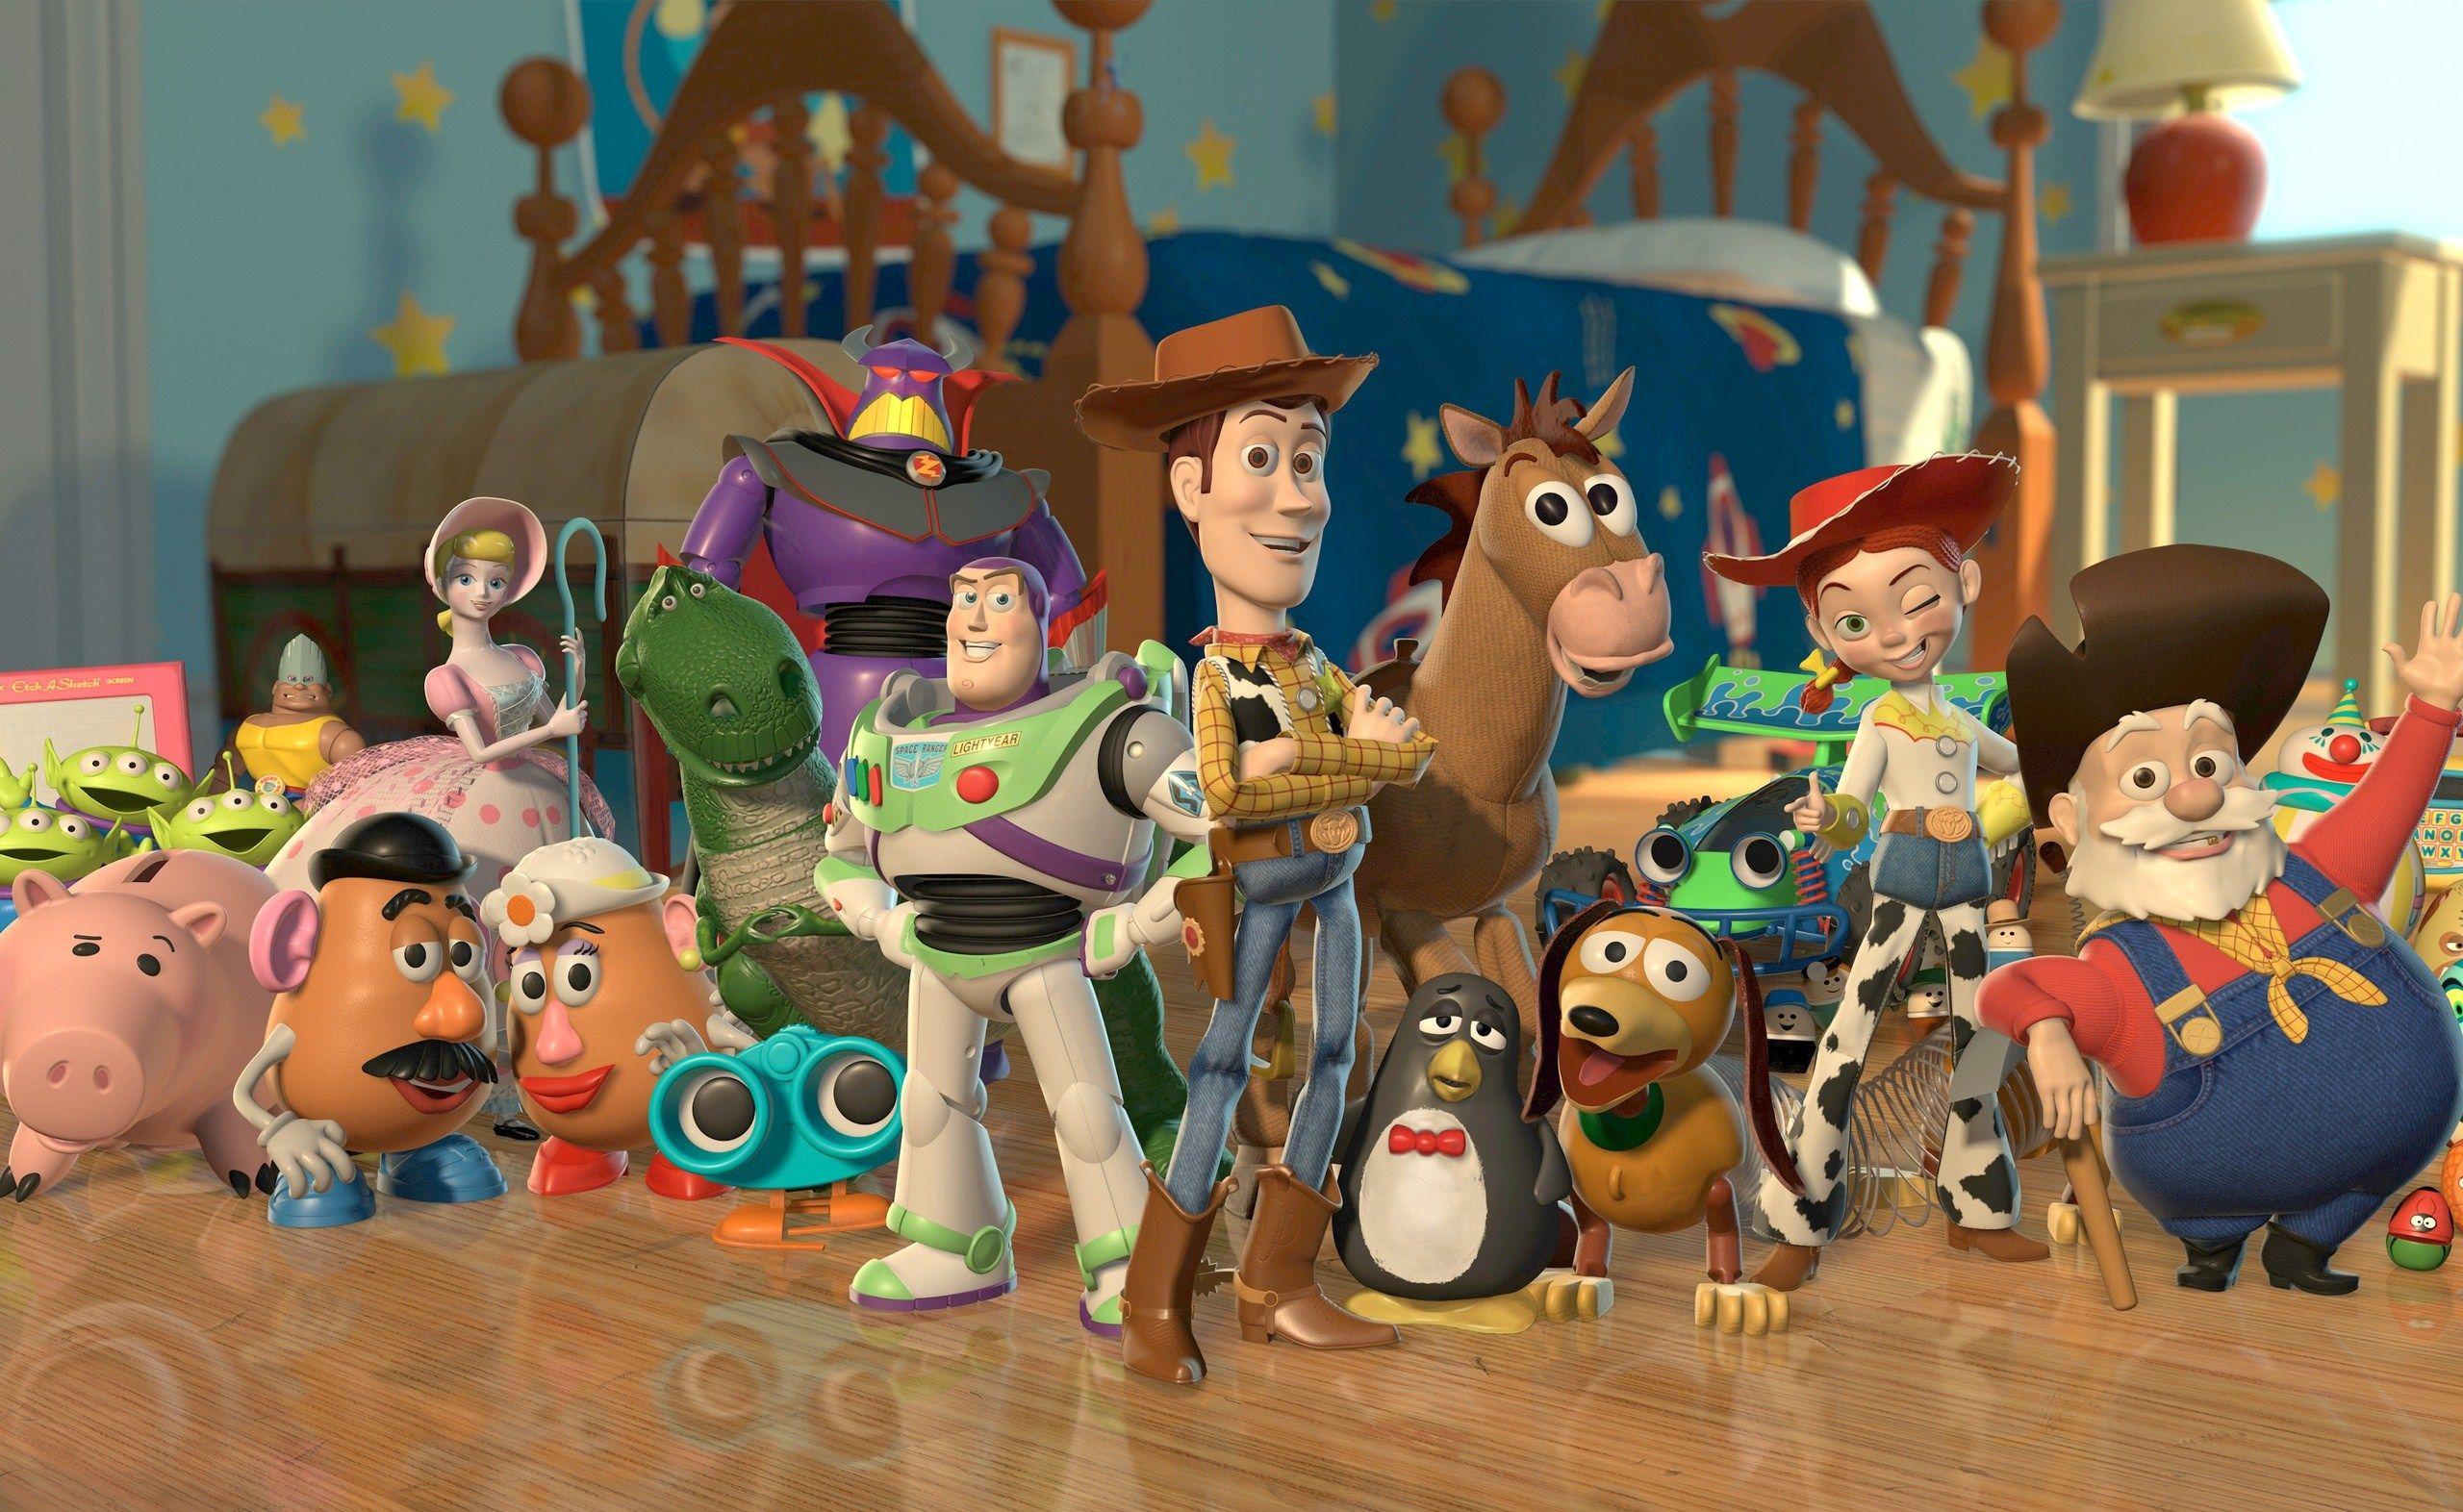 Toy Story 3 Movie desktop downloads DownloadToyStory2